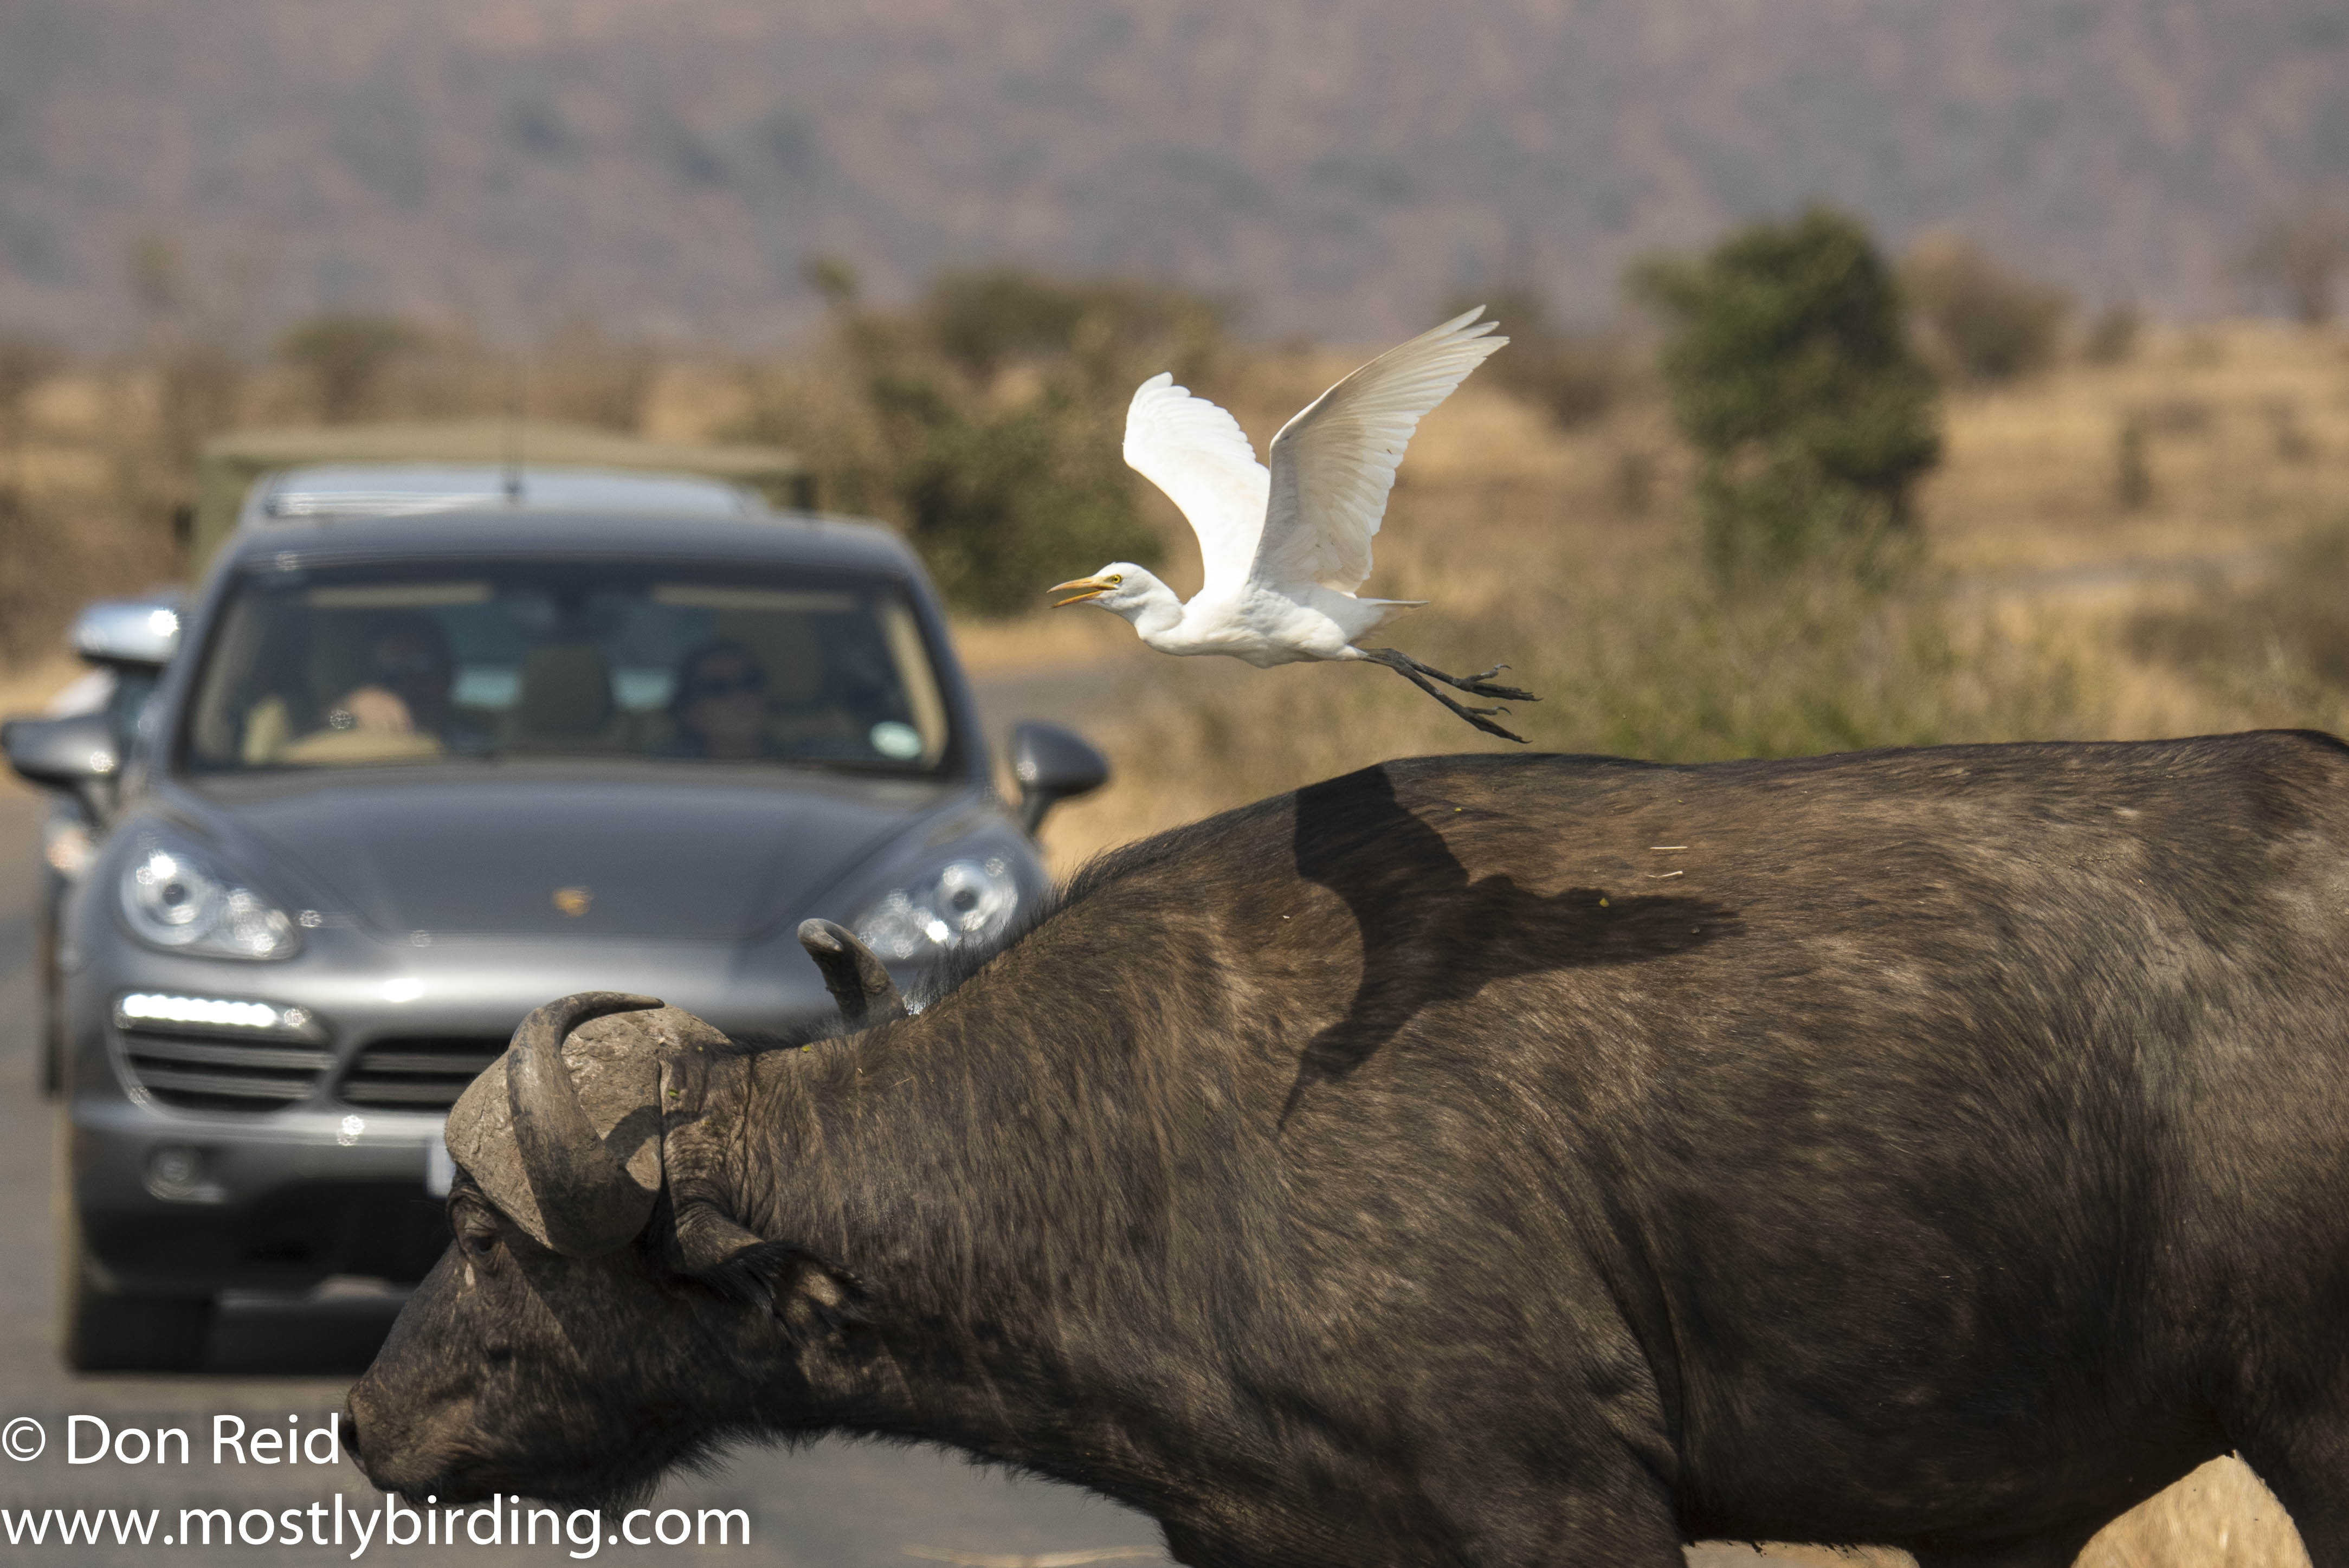 Cattle Egret on Buffalo, Kruger Park